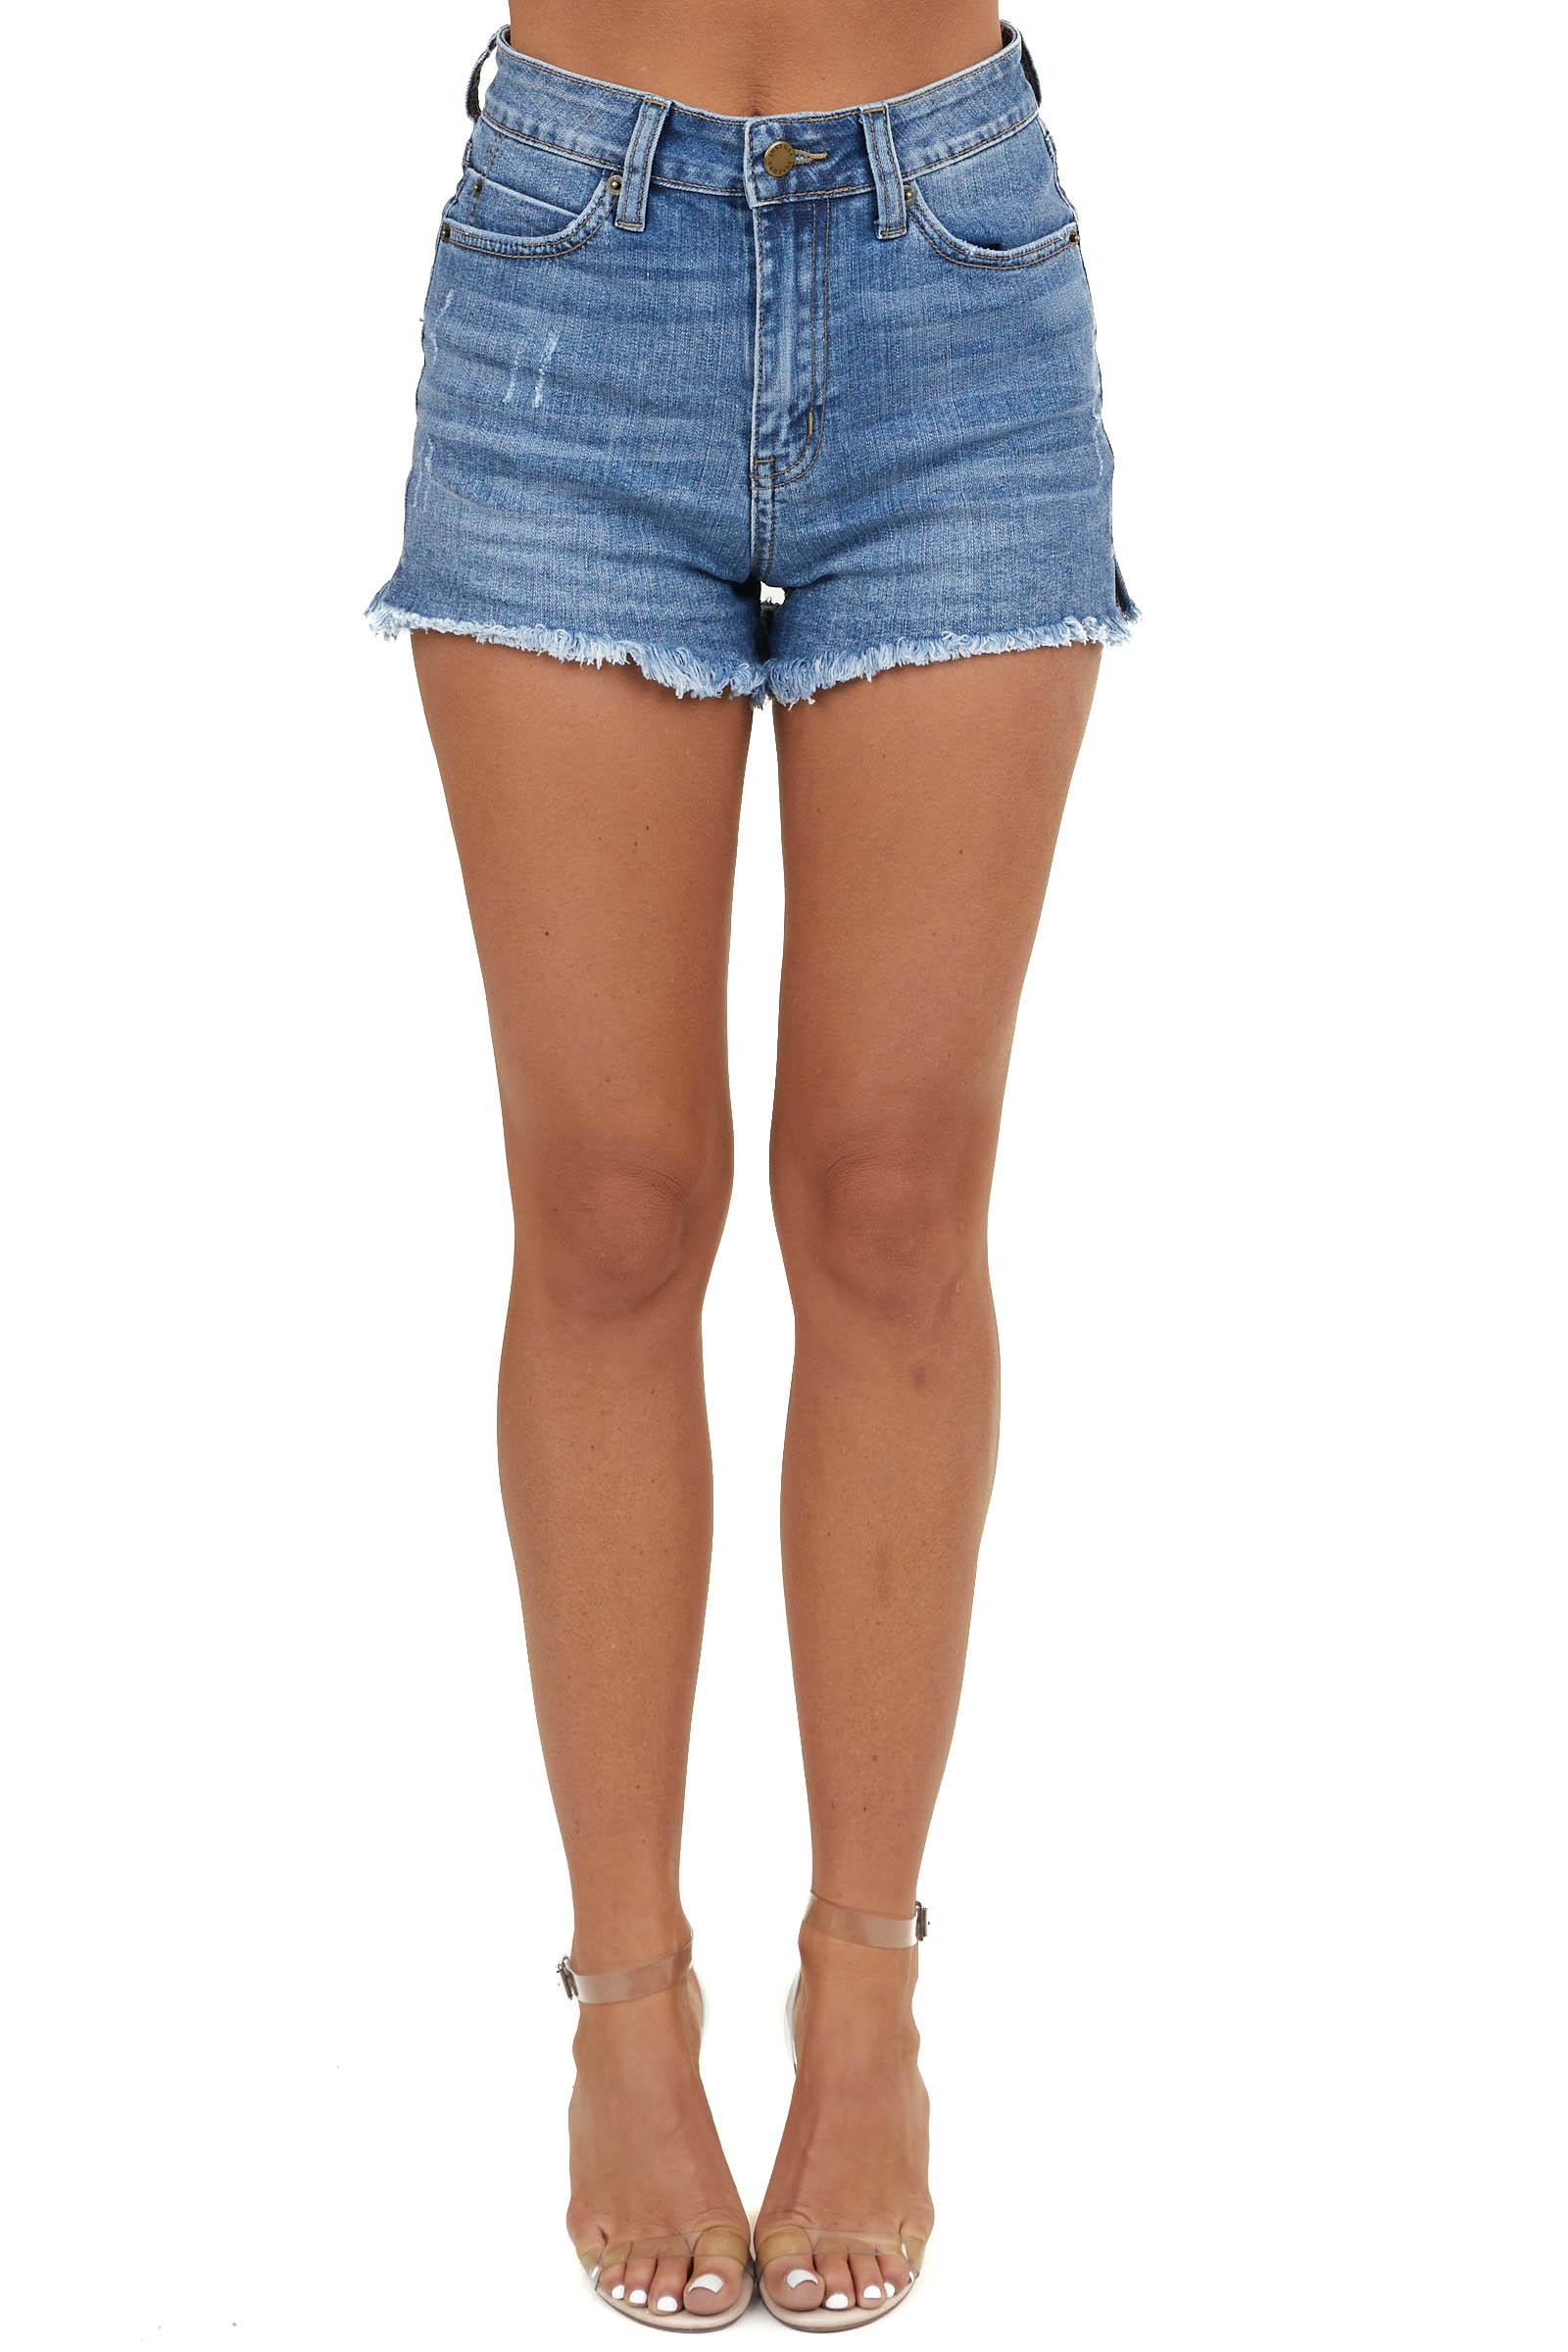 Medium Wash Denim Shorts with Distressed Hem and Side Slits